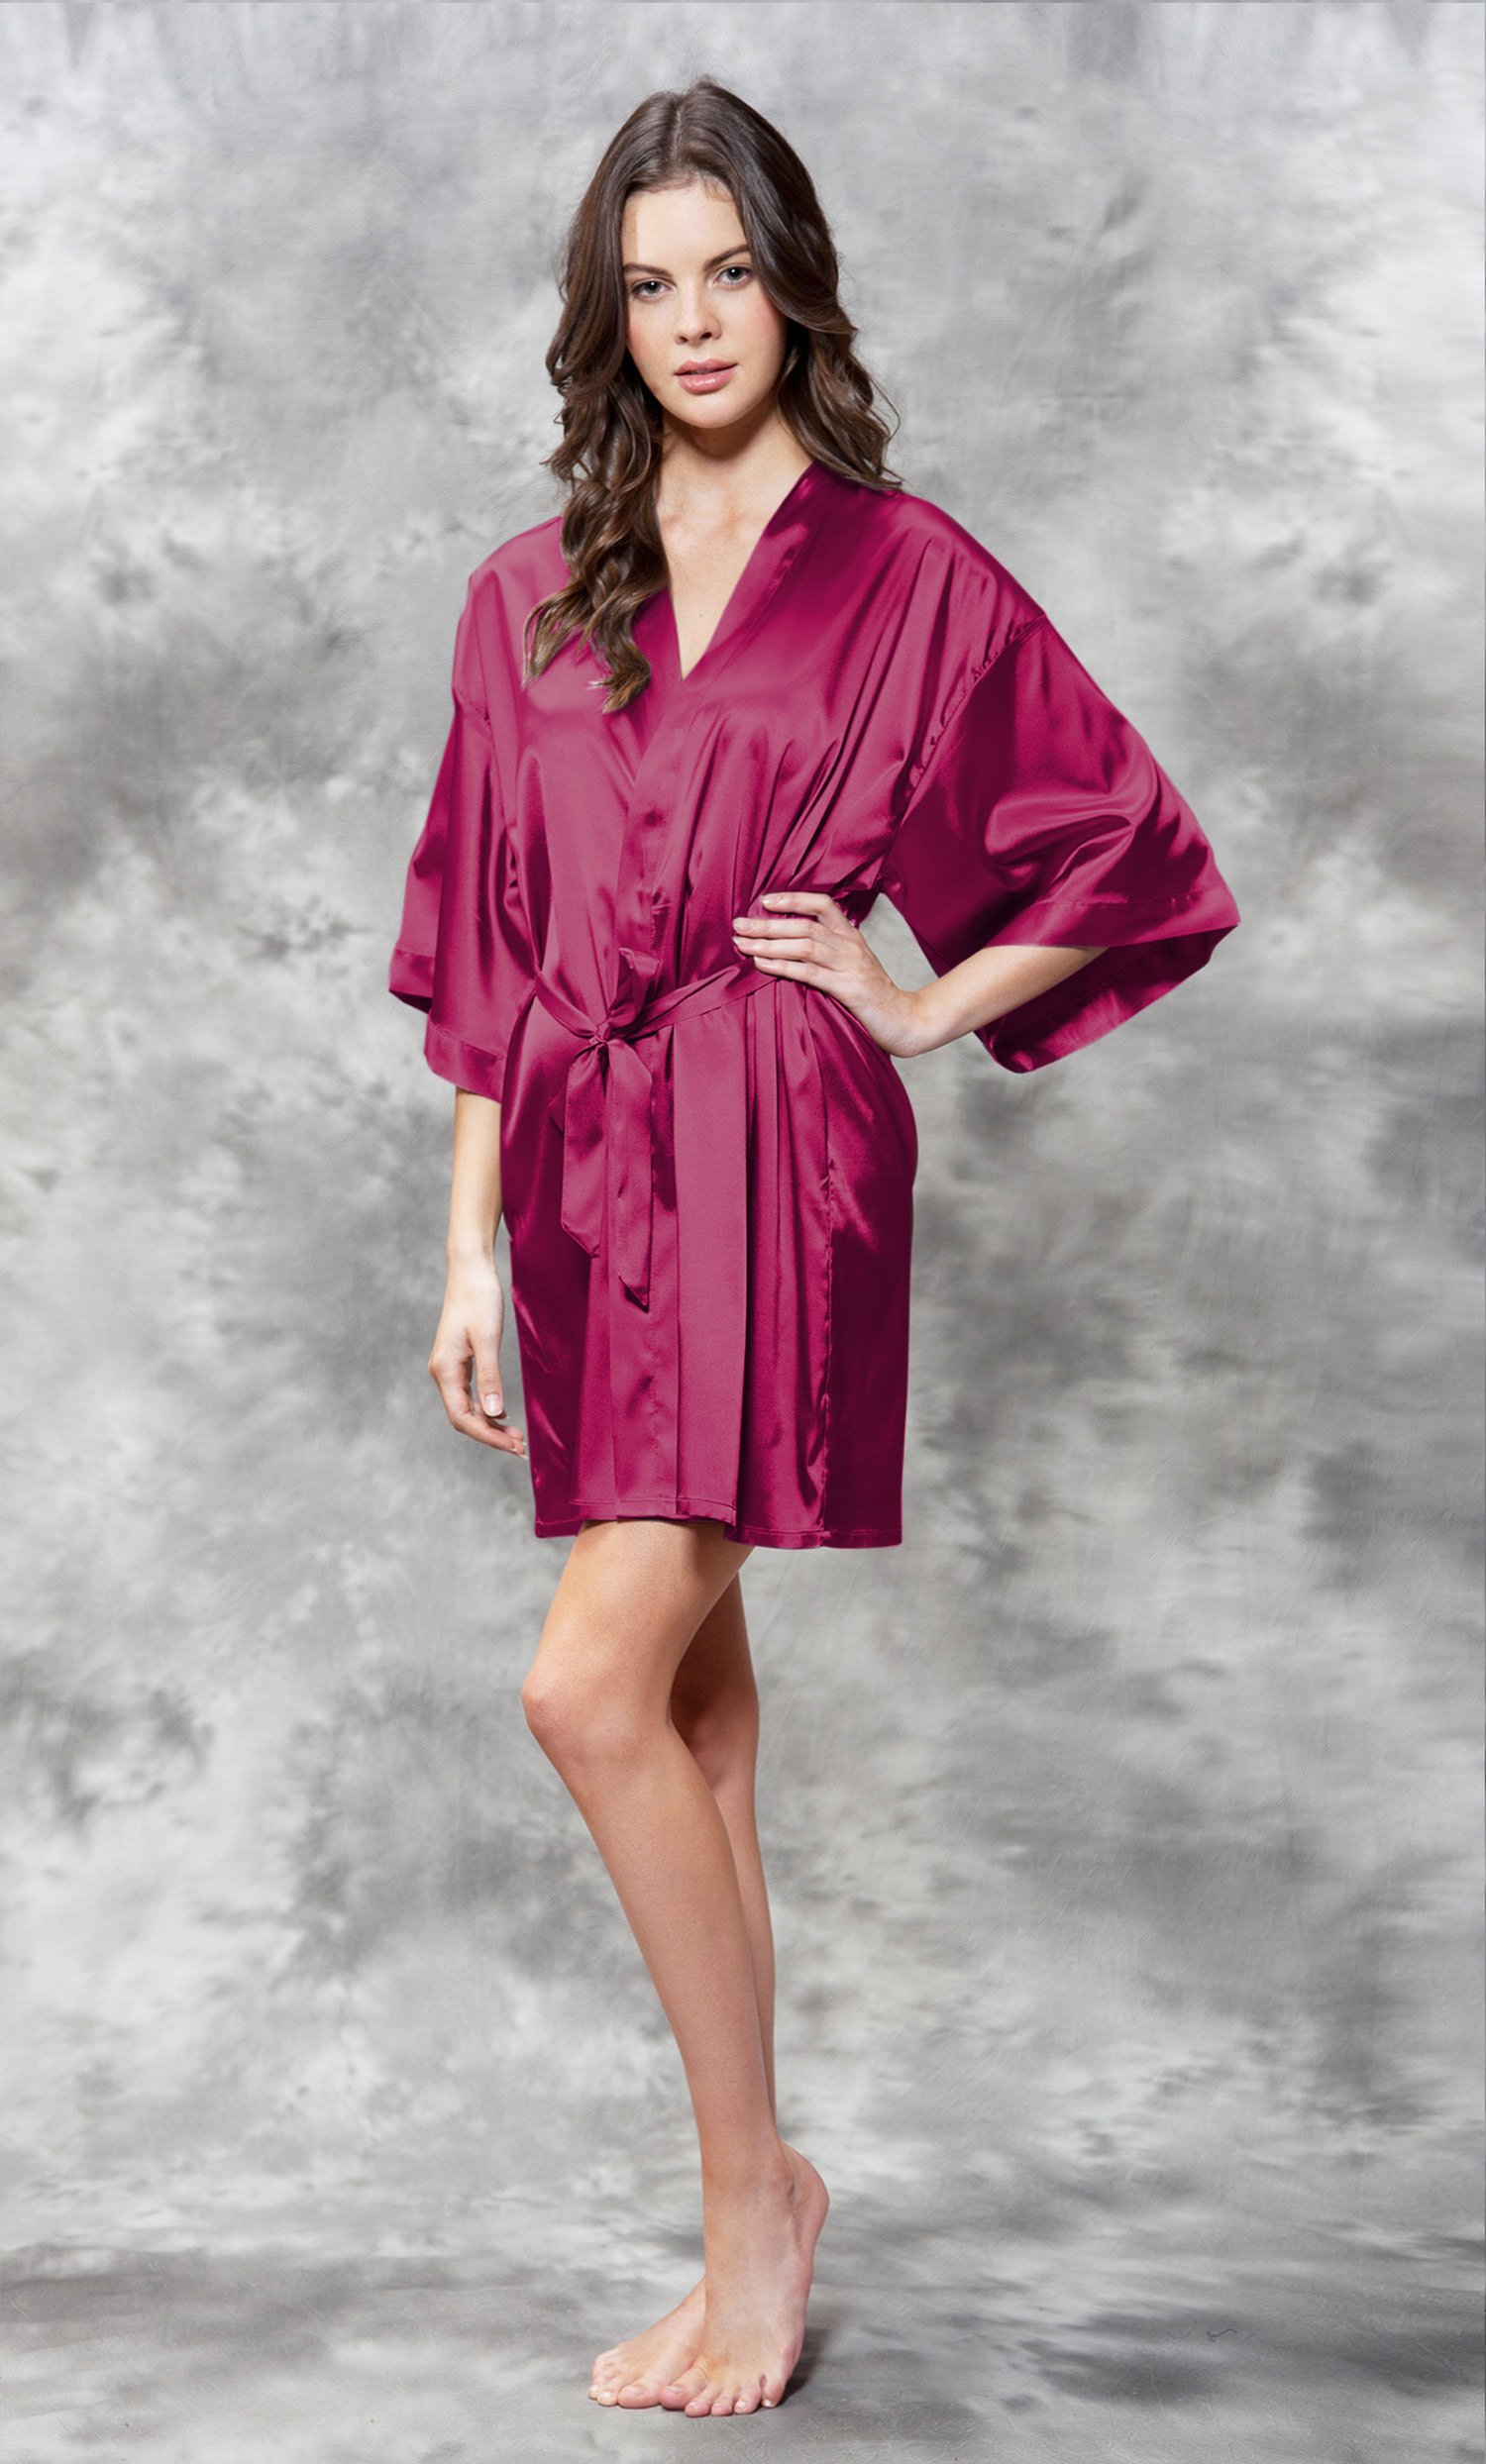 Bride Clear Rhinestone Satin Kimono Wine Red Short Robe-Robemart.com